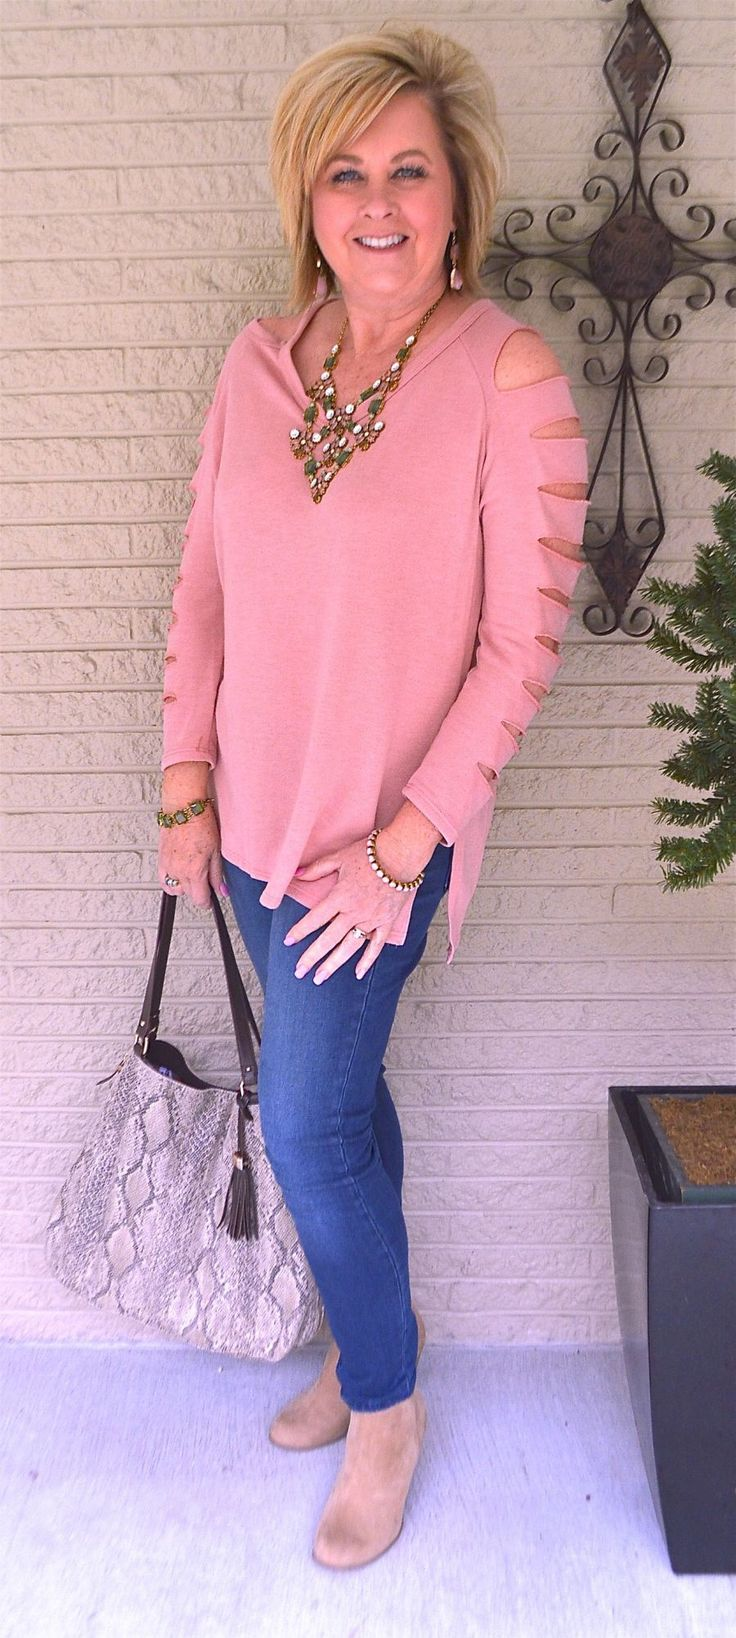 50 IS NOT OLD   COMFORTABLE AND STYLISH   Sweatshirt   Unique Details   Statement Necklace   Fashion over 40 for the everyday woman